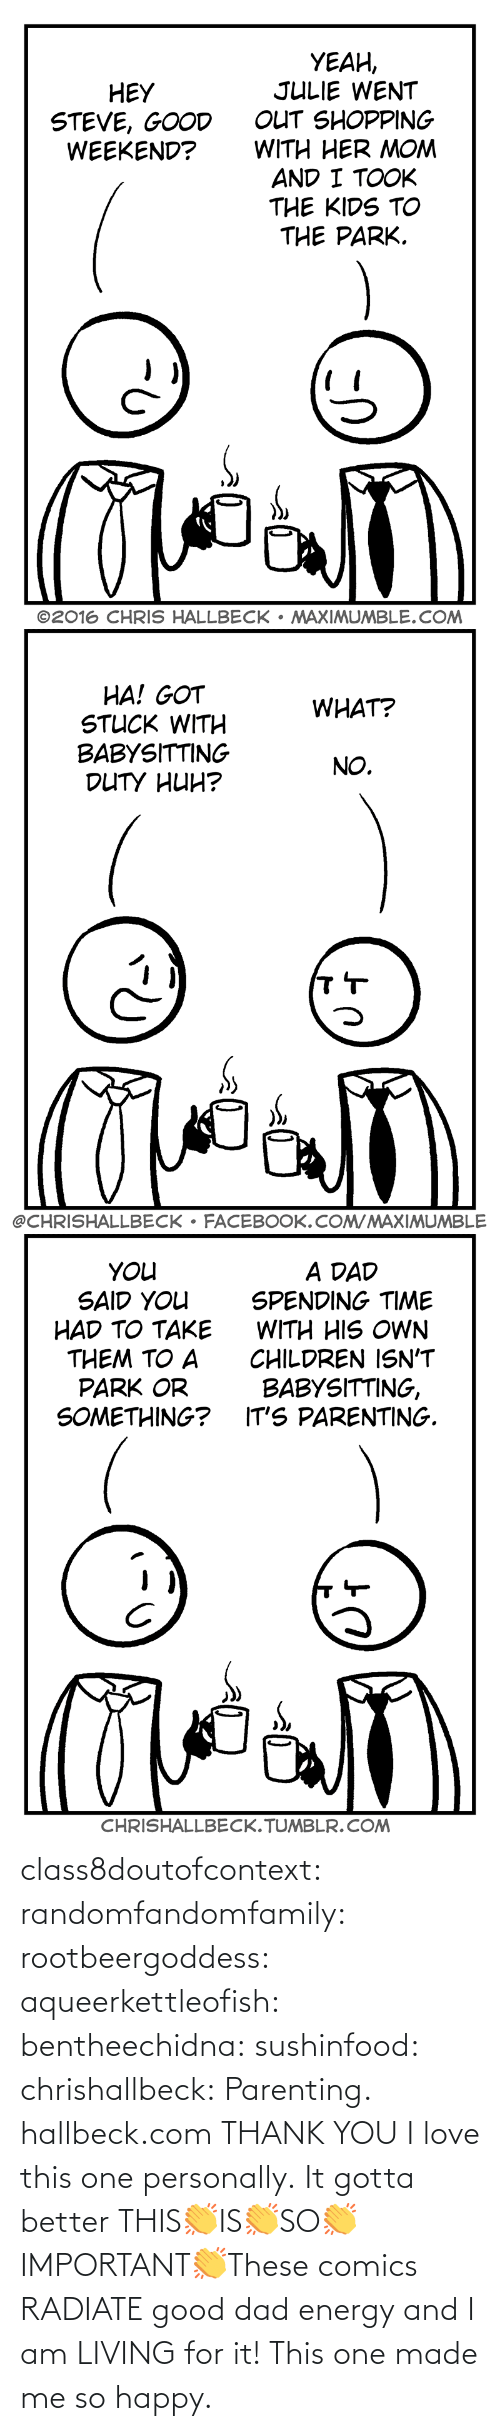 Personally: class8doutofcontext: randomfandomfamily:  rootbeergoddess:  aqueerkettleofish:  bentheechidna:  sushinfood:  chrishallbeck:  Parenting. hallbeck.com  THANK YOU  I love this one personally.    It gotta better   THIS👏IS👏SO👏IMPORTANT👏These comics RADIATE good dad energy and I am LIVING for it!    This one made me so happy.